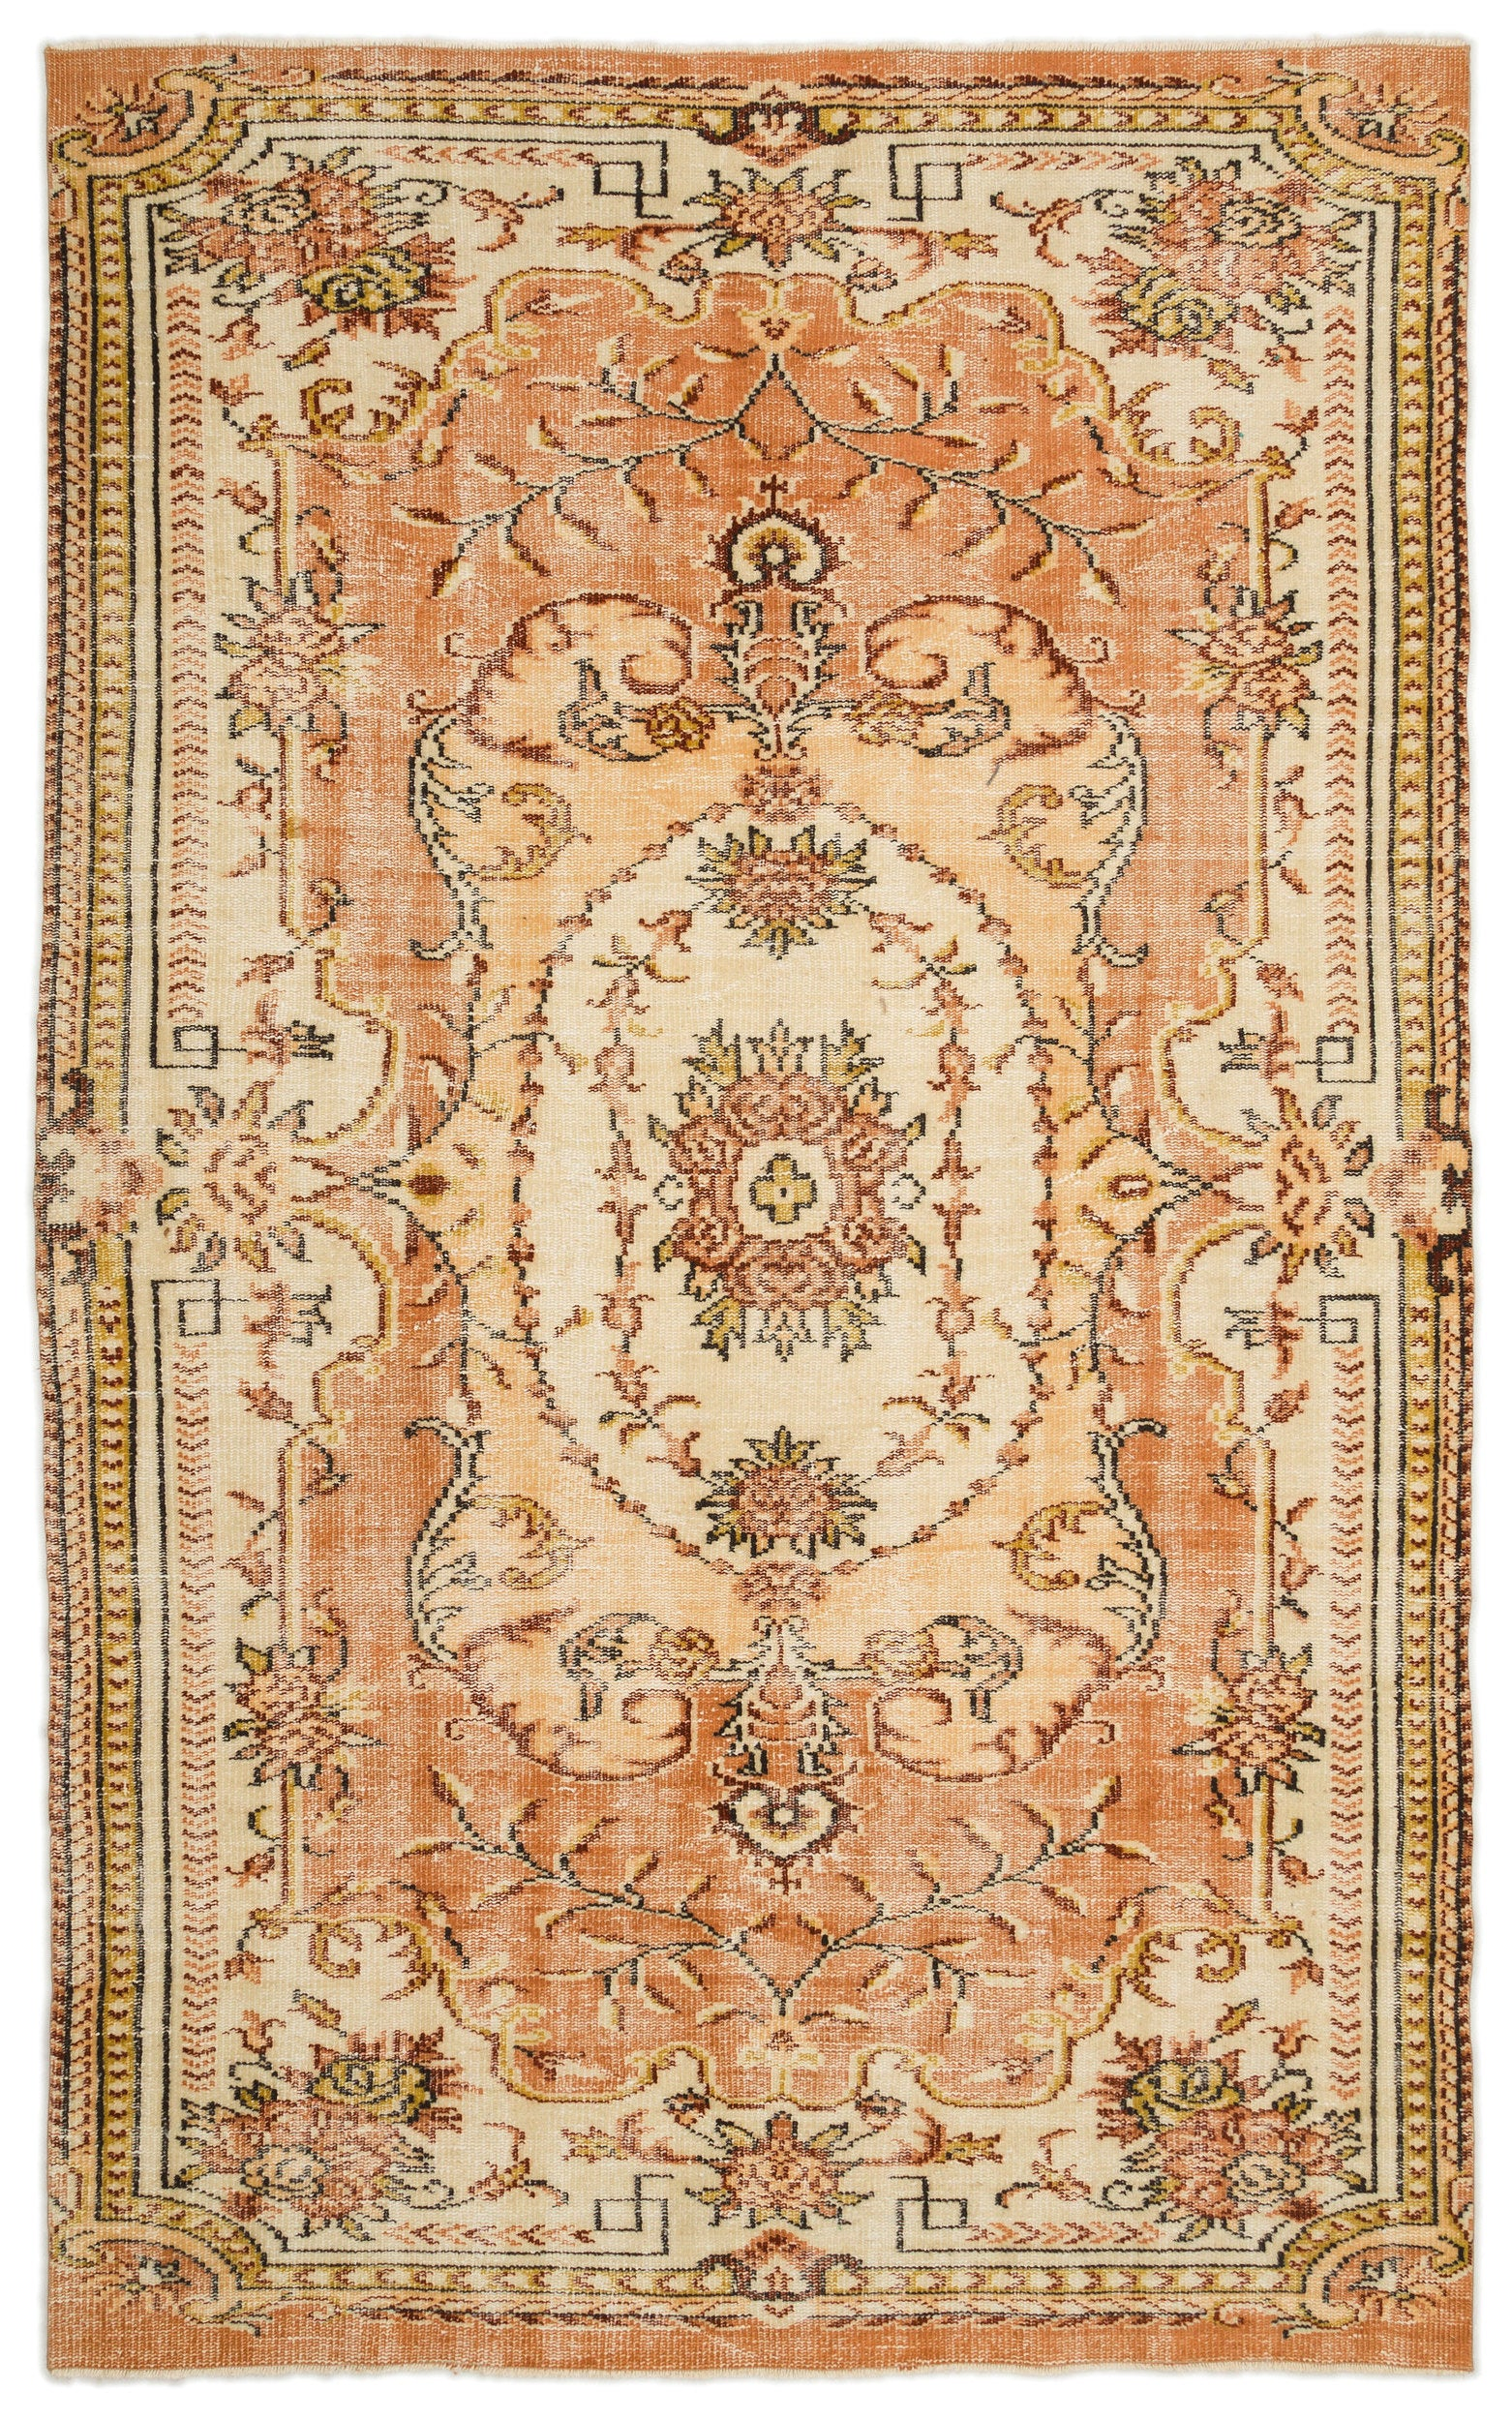 Naturel Over Dyed Vintage Rug 5'11'' x 9'4'' ft 180 x 285 cm